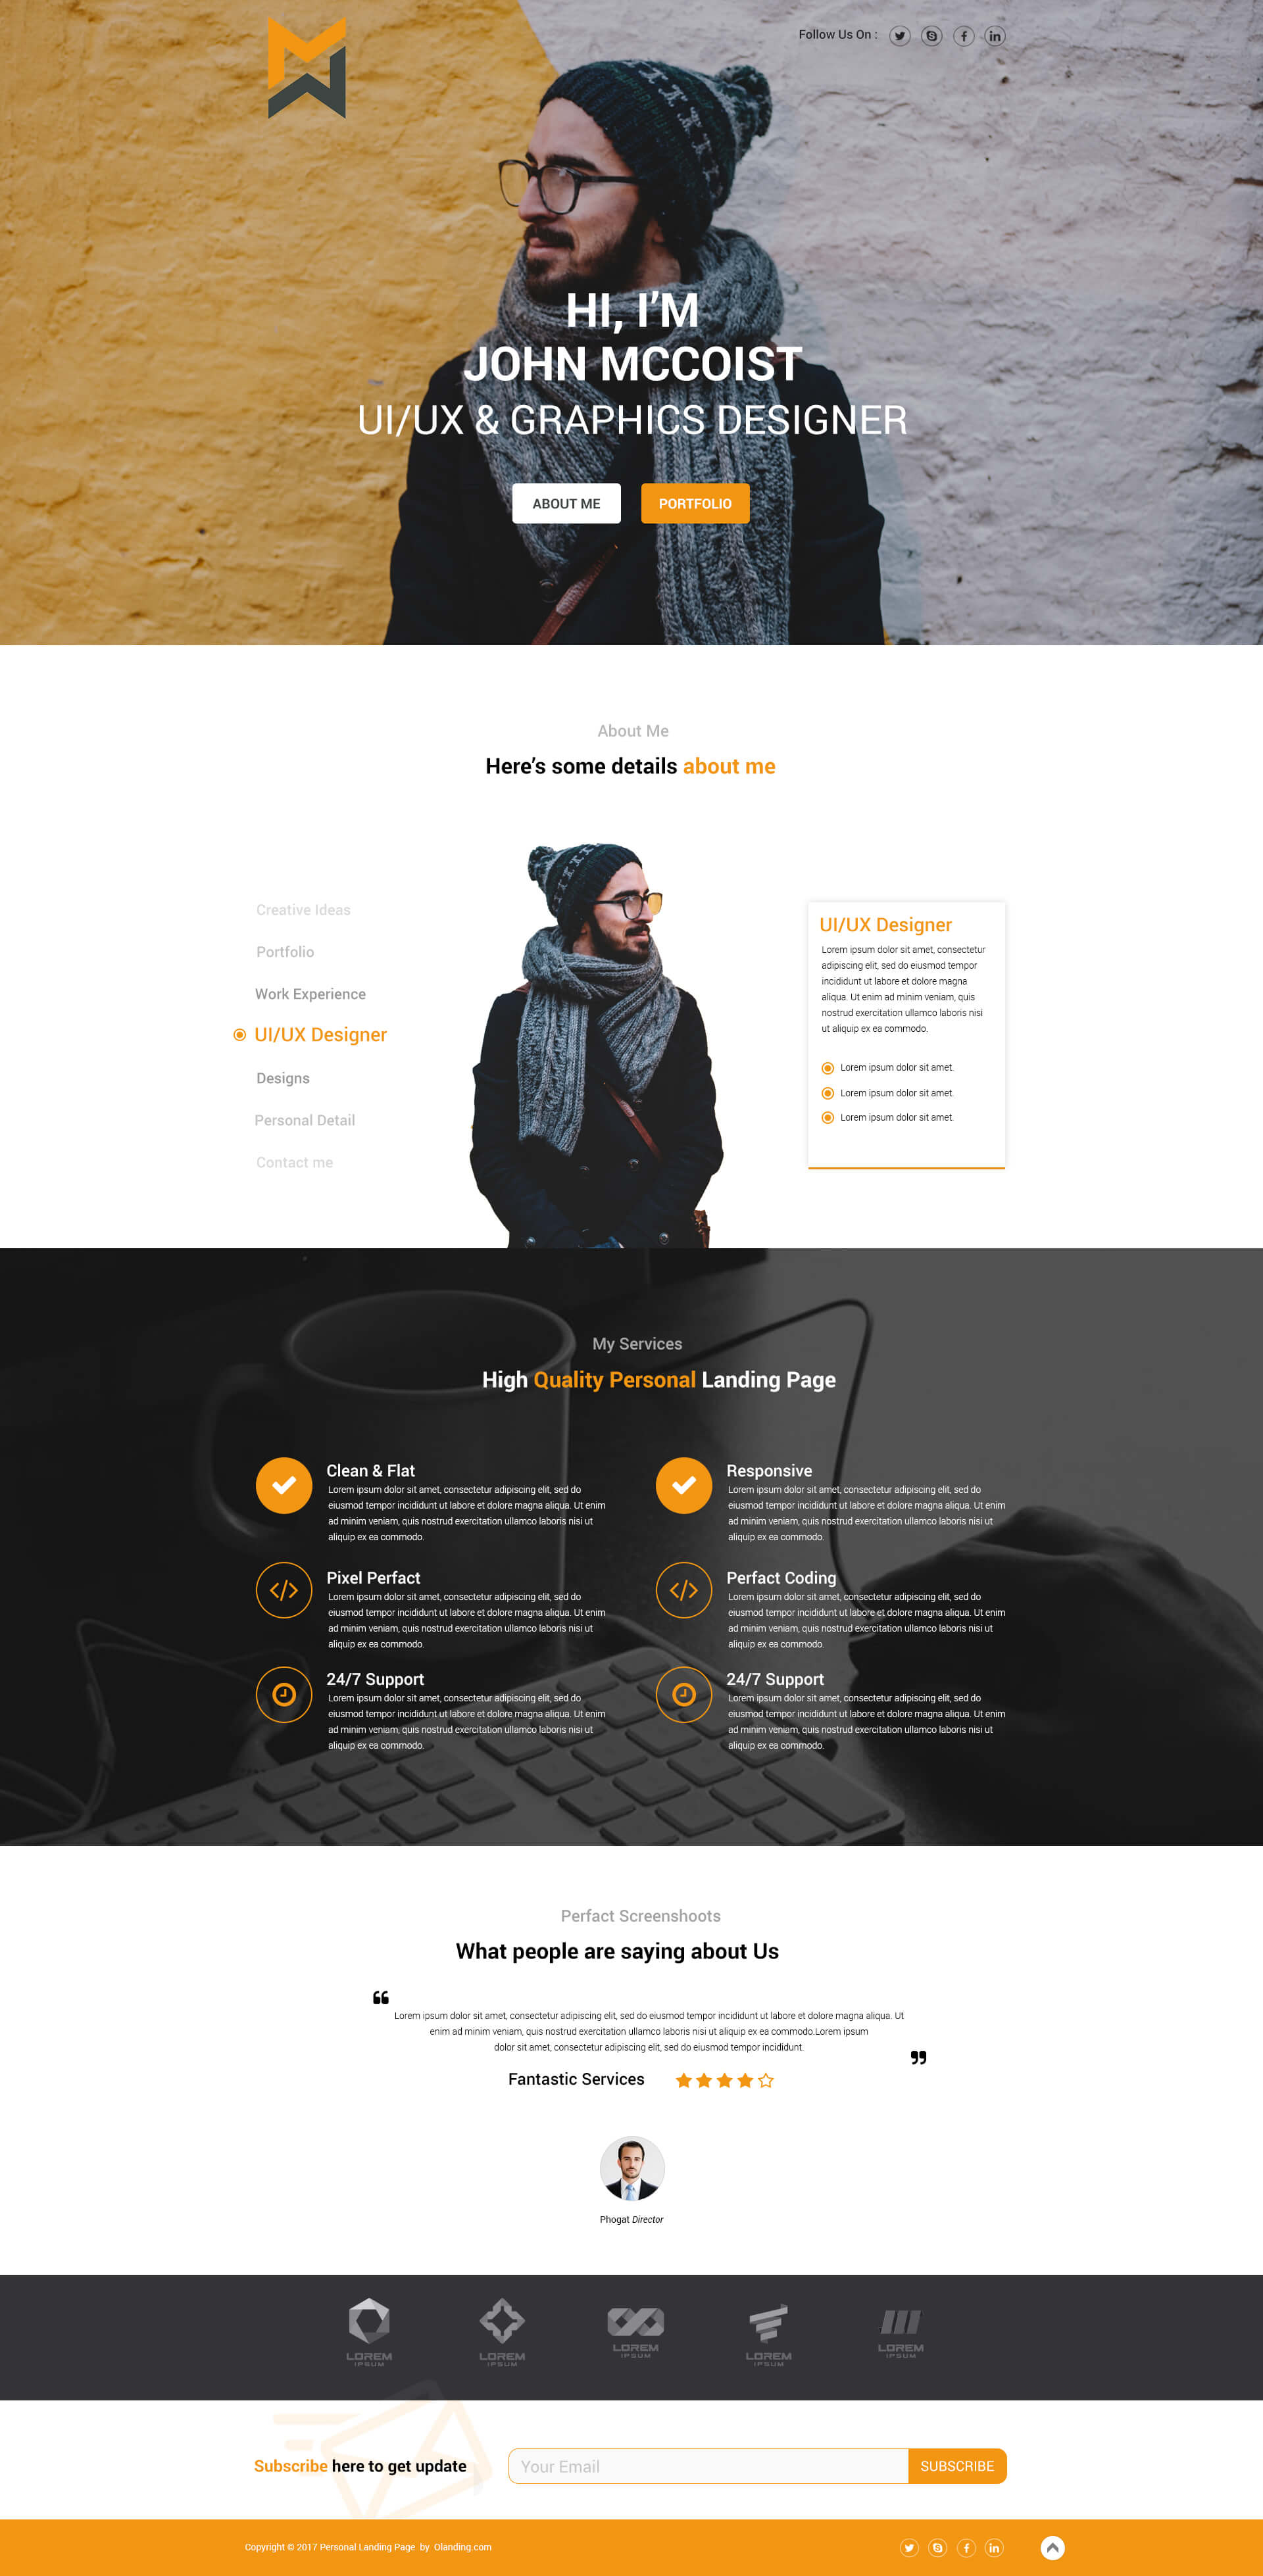 Download Personal Landing Page Design Template For The Best Way To - Personal landing page template